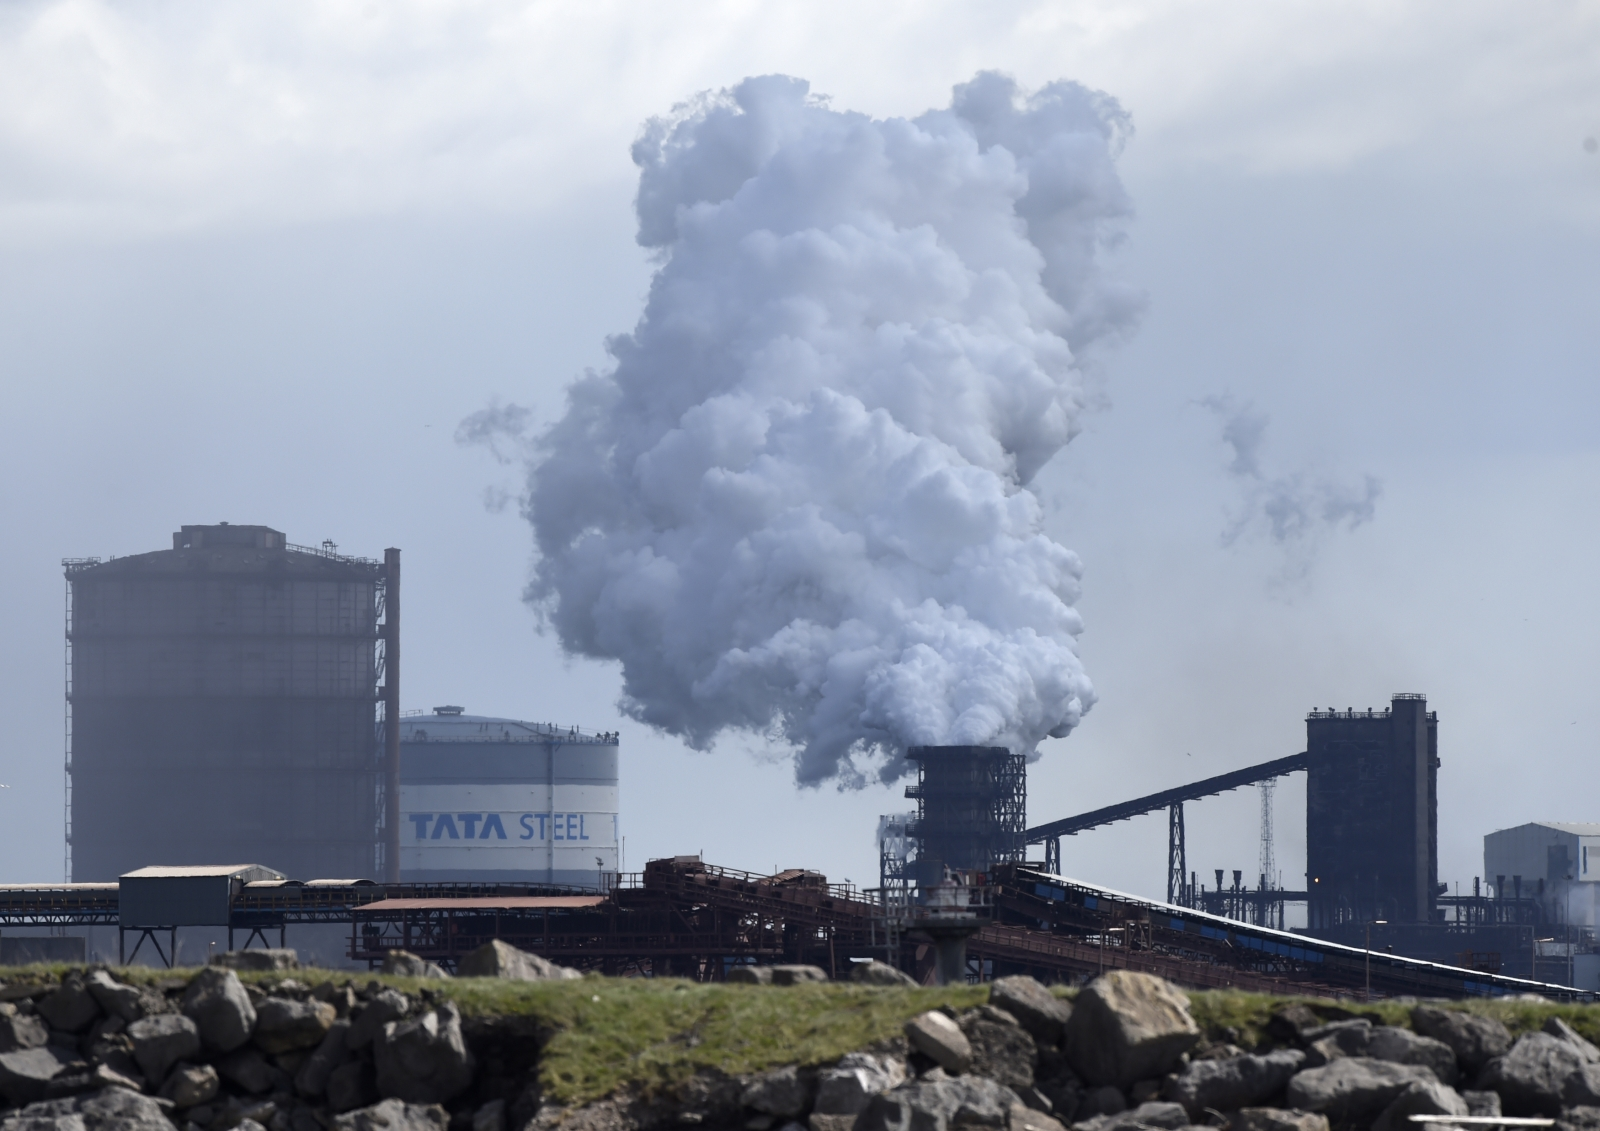 Tata Steel has to still overcome a few hurdles before it can save its Port Talbot plant, Pensions Regulator warns